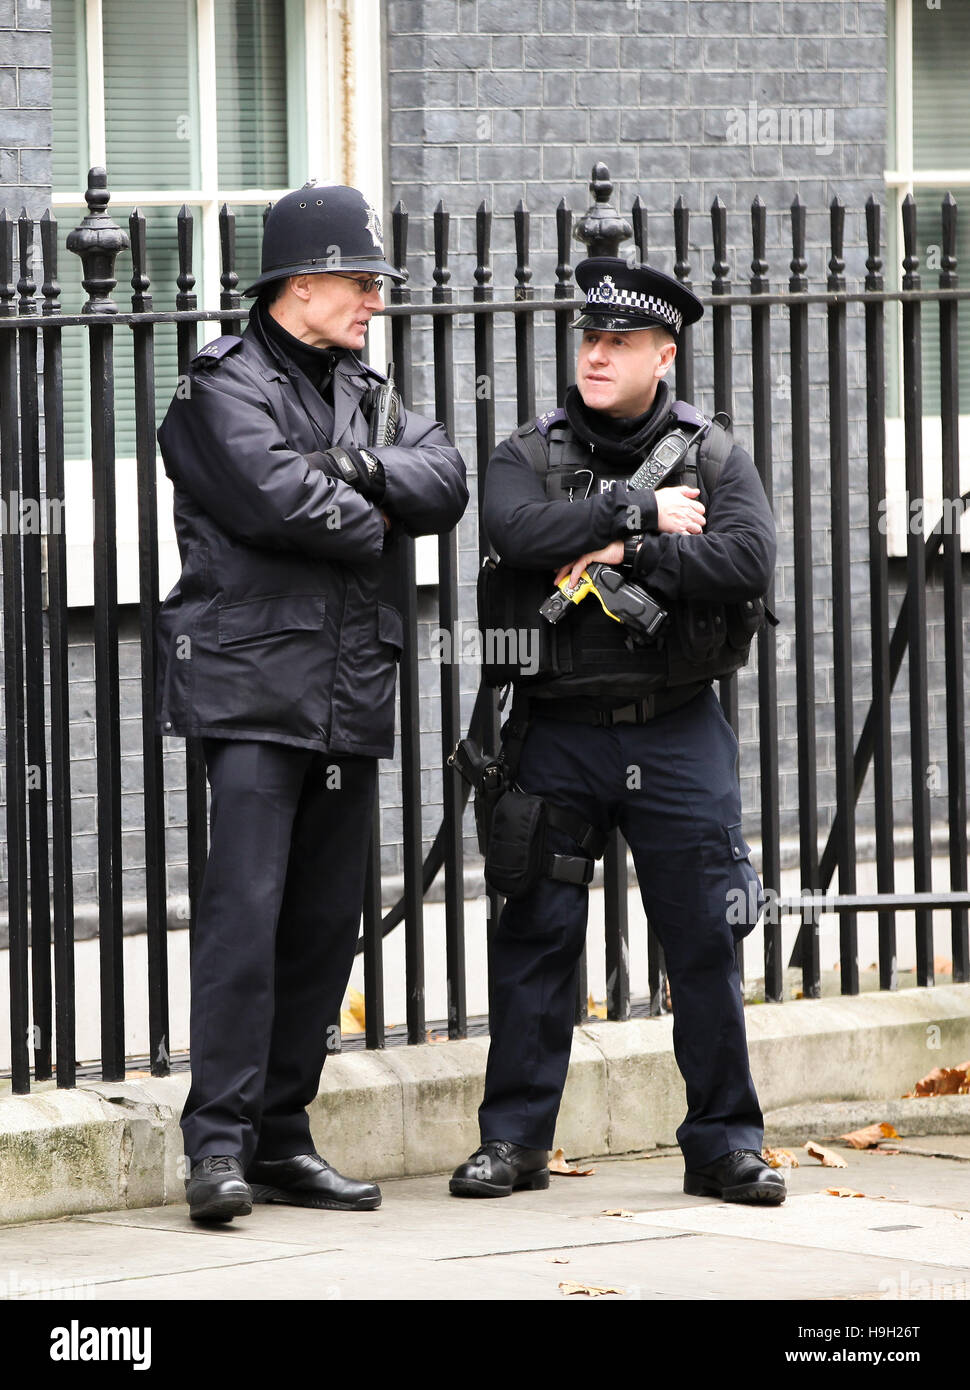 Downing Street, London, UK. 23rd Nov, 2016. Police officers outside No 10 Downing Street Credit:  Dinendra Haria/Alamy Stock Photo